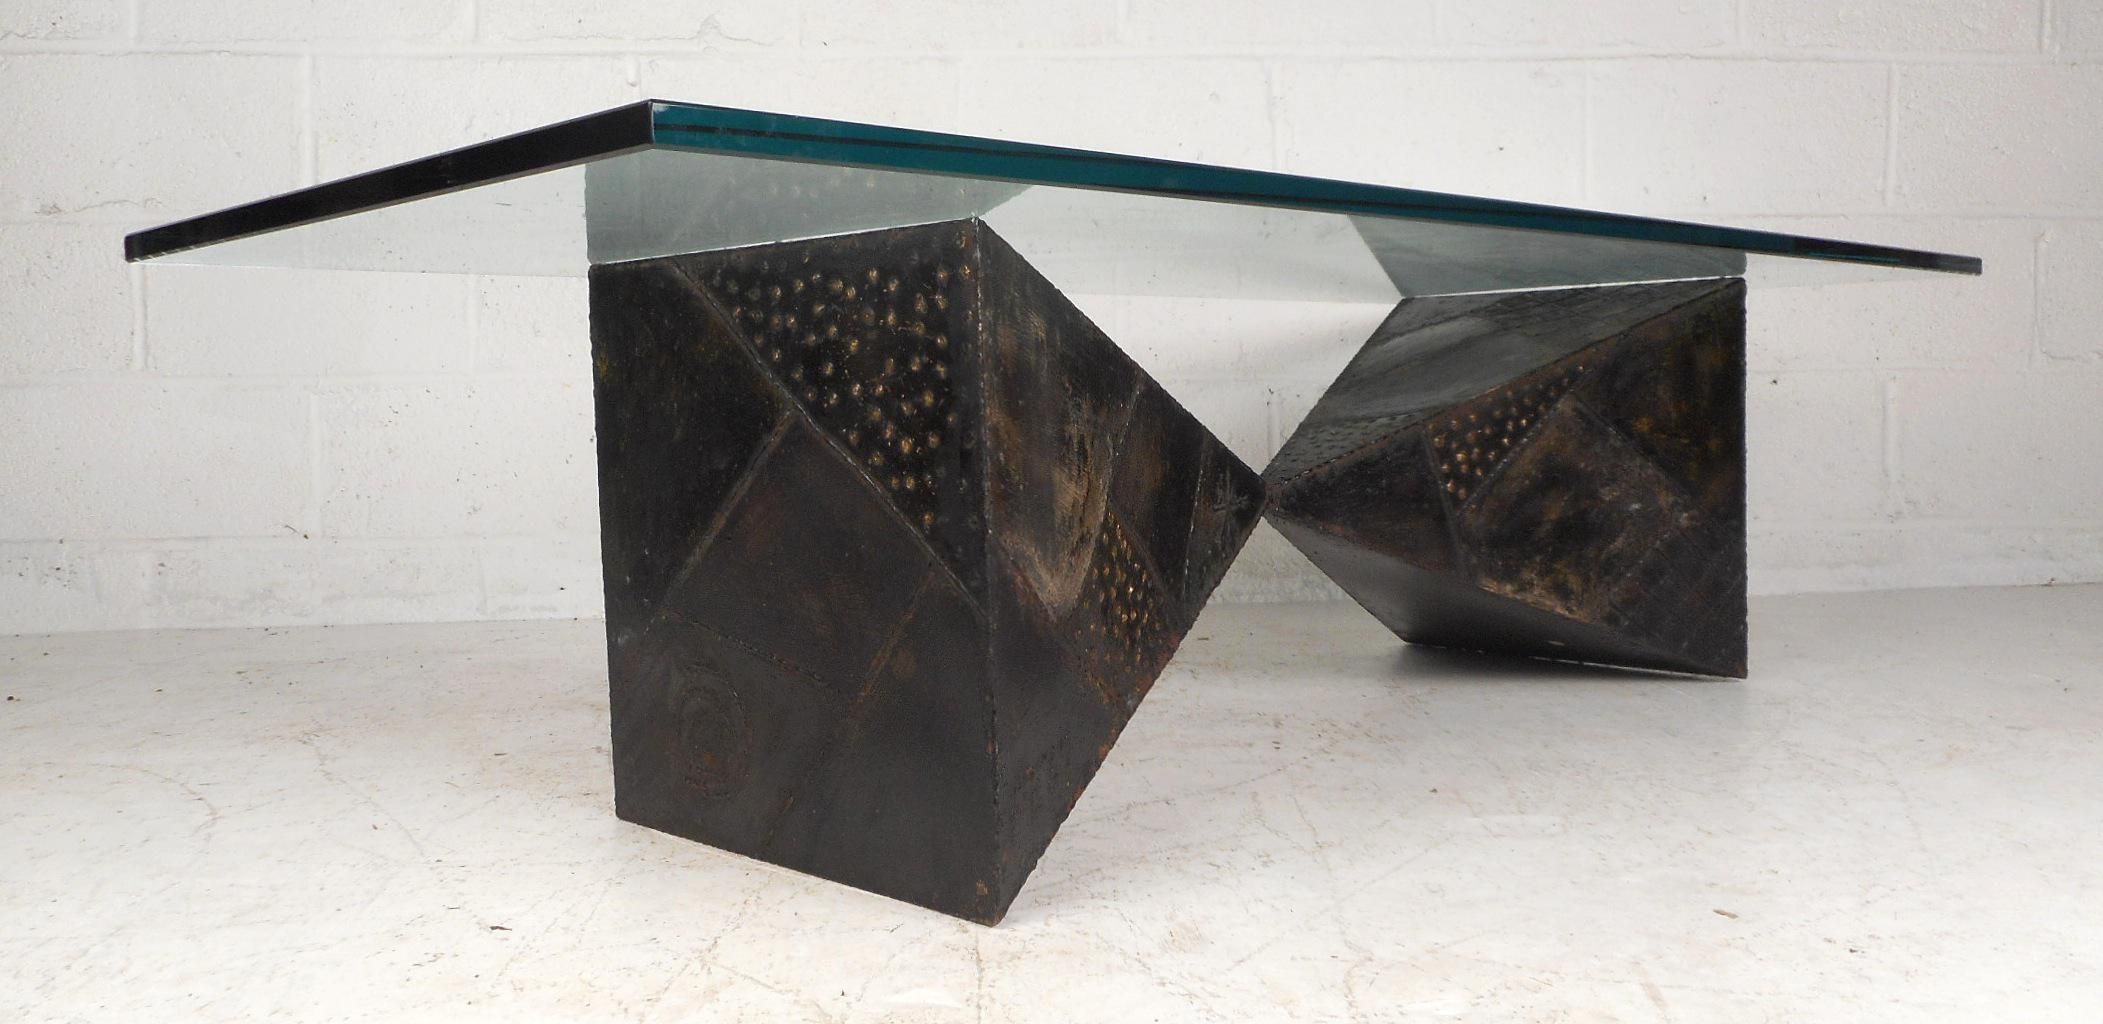 Paul Evans Stunning Glass Top Brutalist Coffee Table By Paul Evans For  Directional For Sale